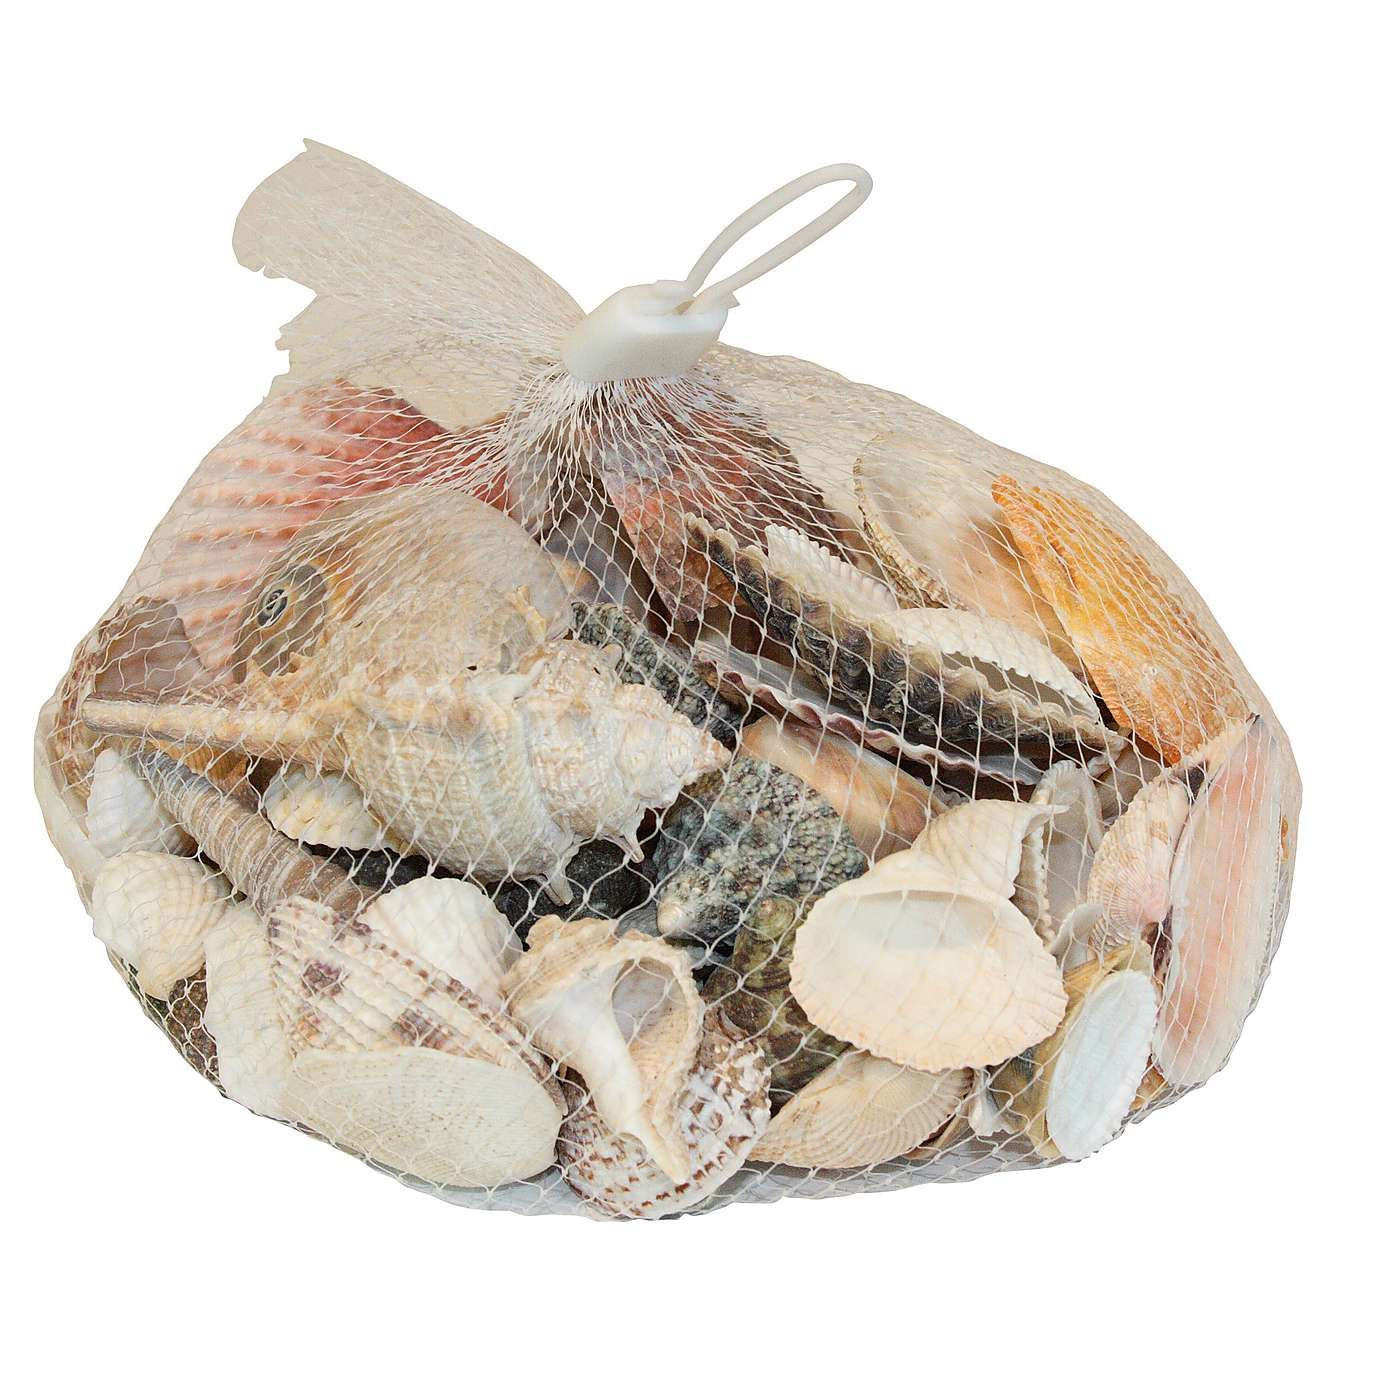 Dunelm Bathroom Accessories Coastal Decorative Shells Dunelm House List To Buy Pinterest